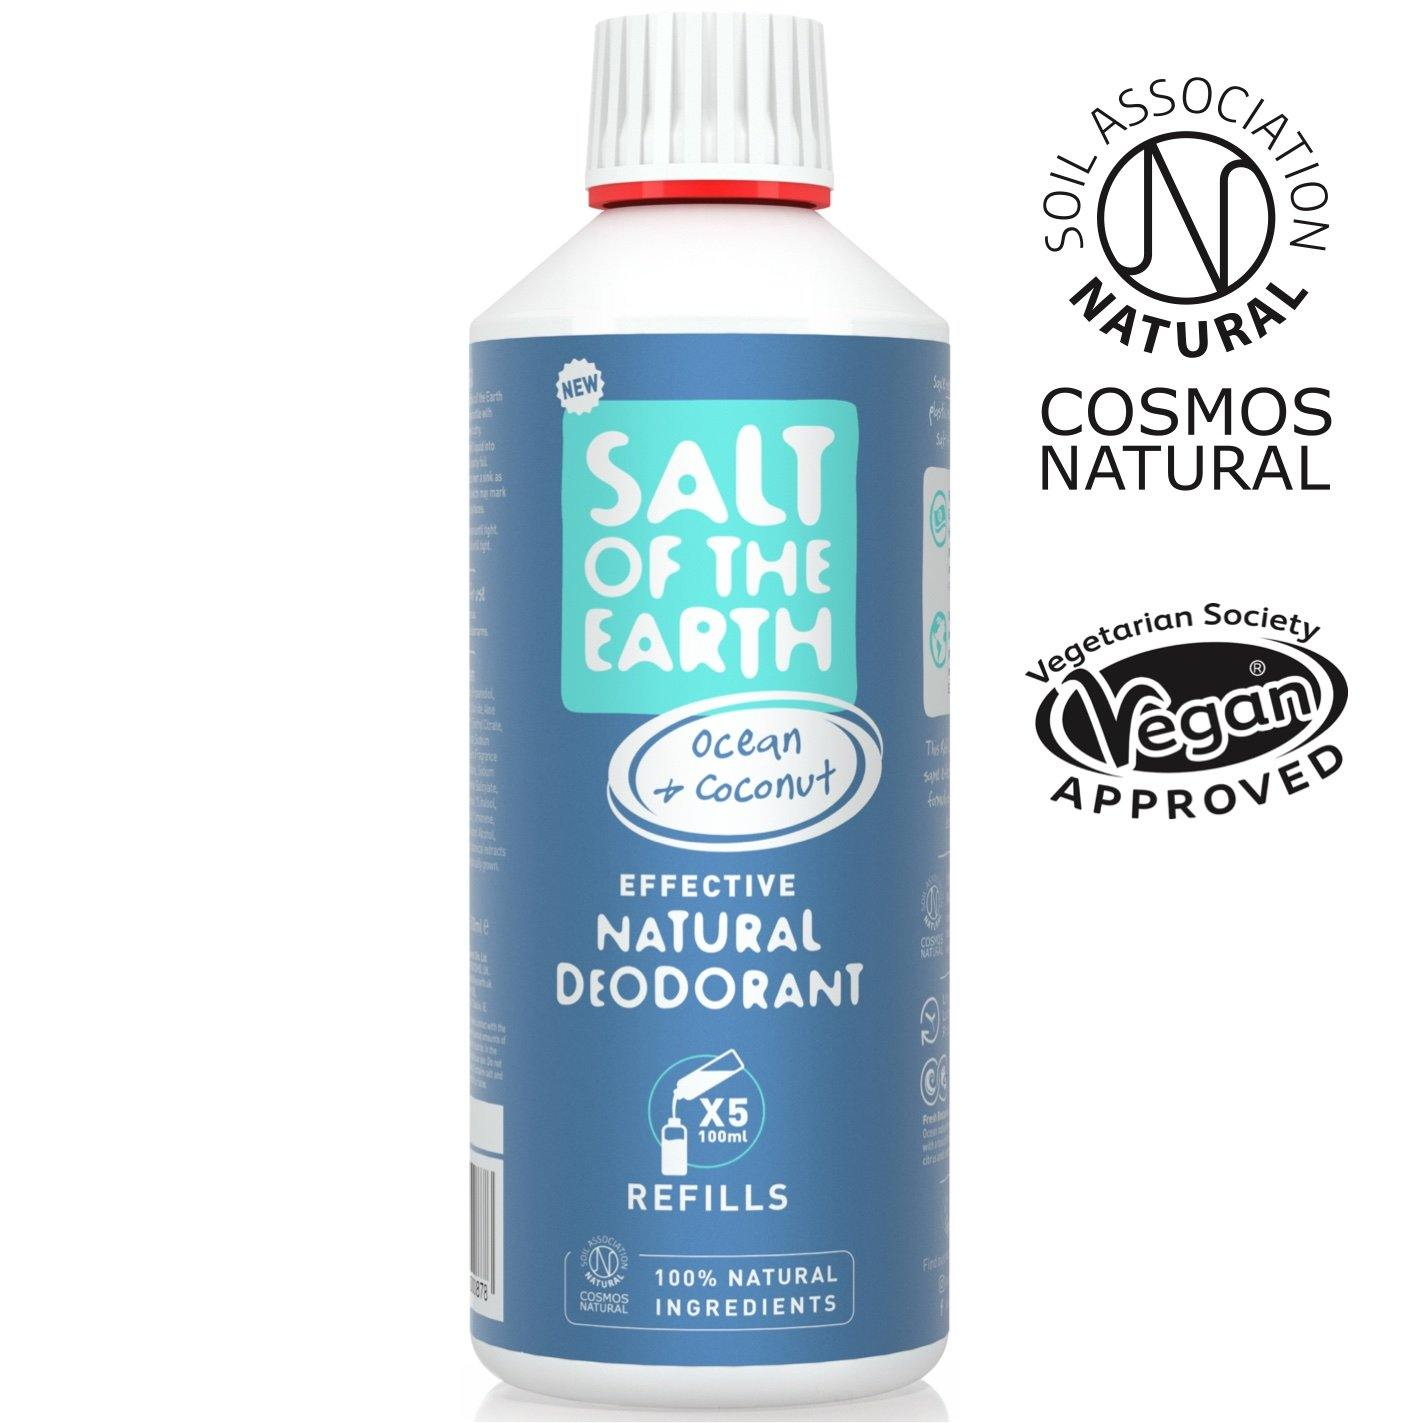 Refill deodorant.  Salt of the Earth Ocean & Coconut